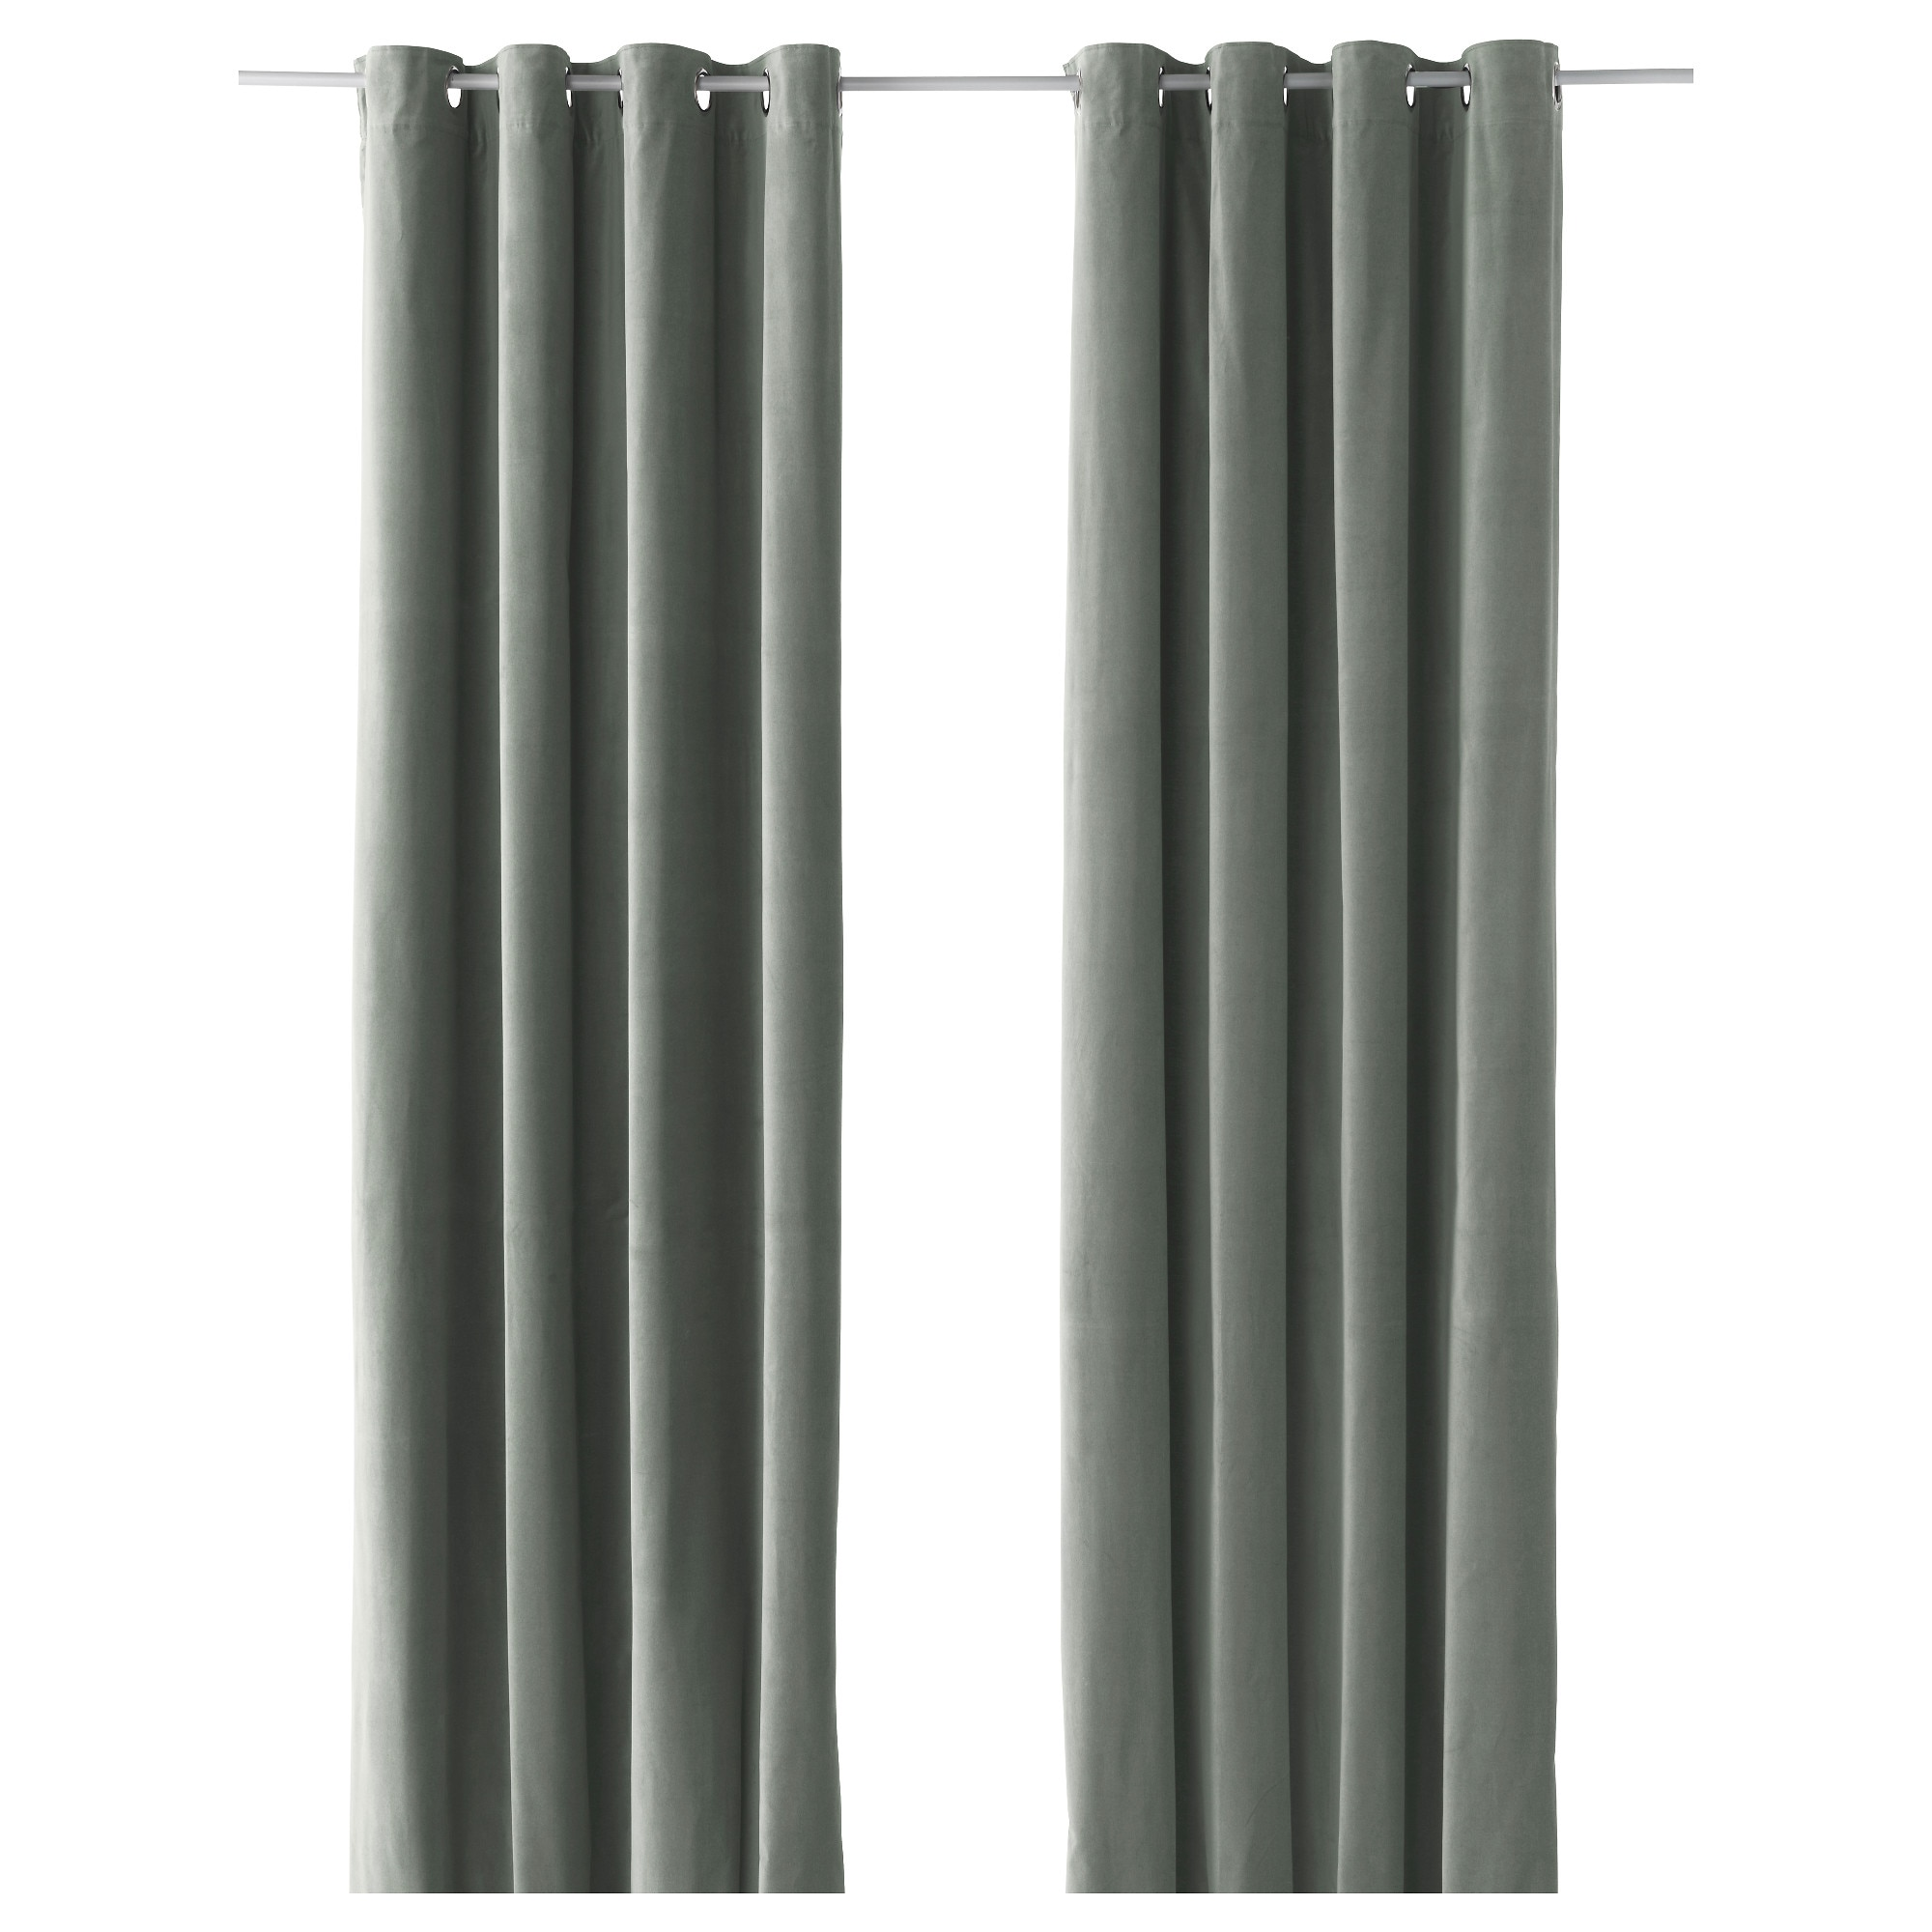 Kelly green velvet curtains - Sanela Curtains 1 Pair Gray Green Length 98 Width 55